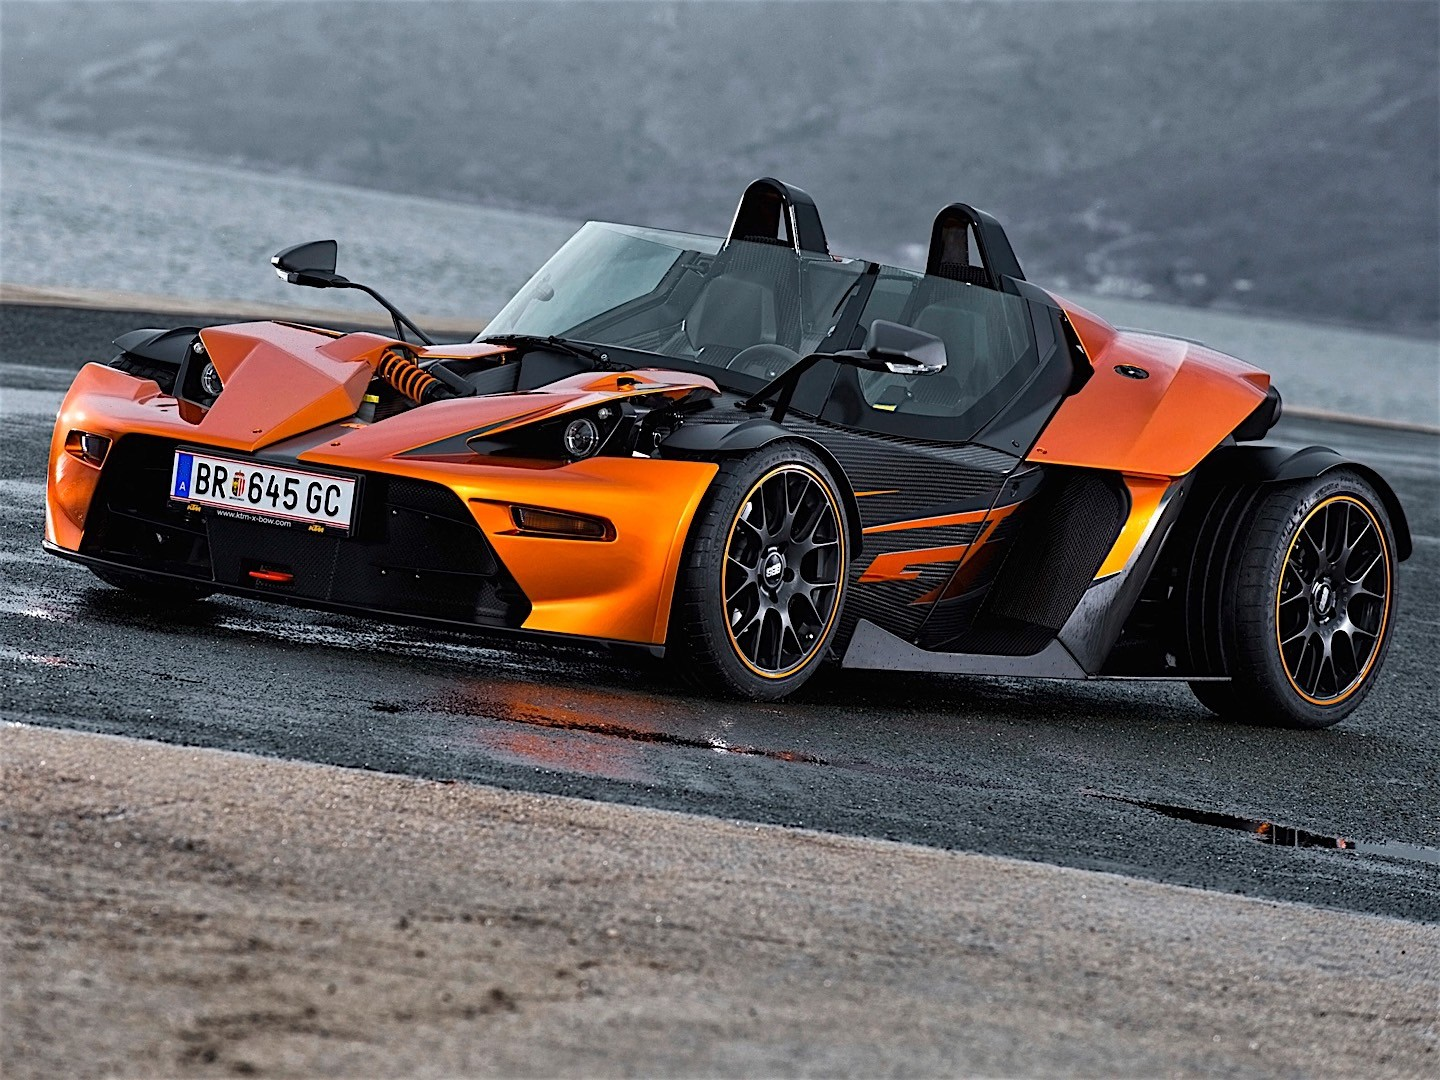 ktm x bow gt specs 2013 2014 2015 2016 2017 2018. Black Bedroom Furniture Sets. Home Design Ideas